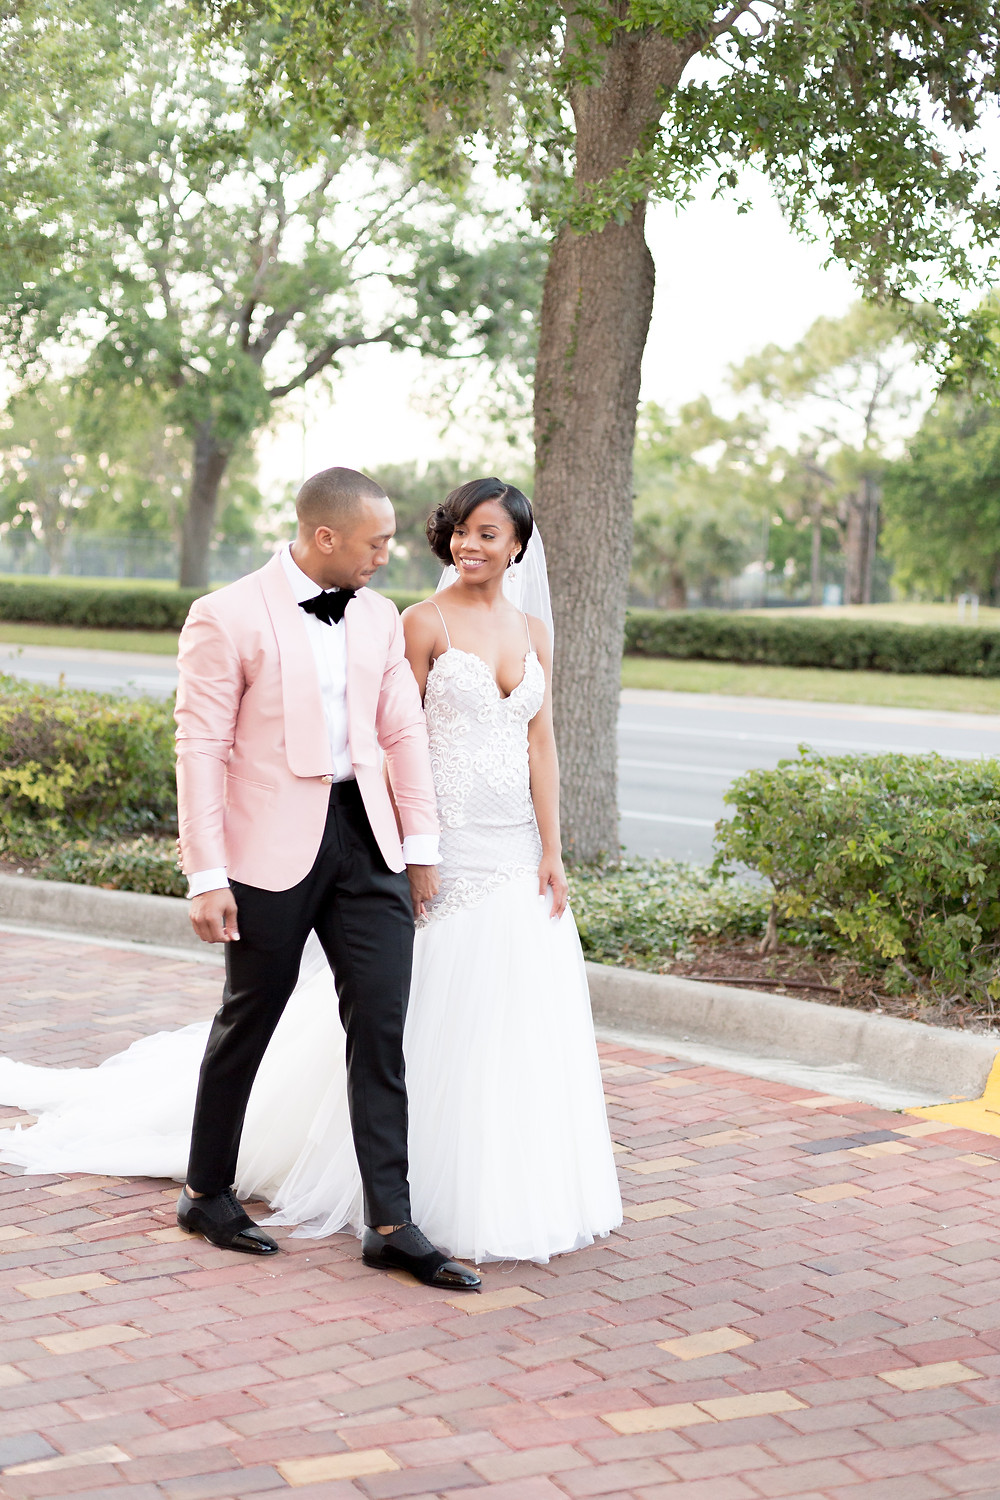 5 Reasons Why First Looks Aren't Only For The Couple.